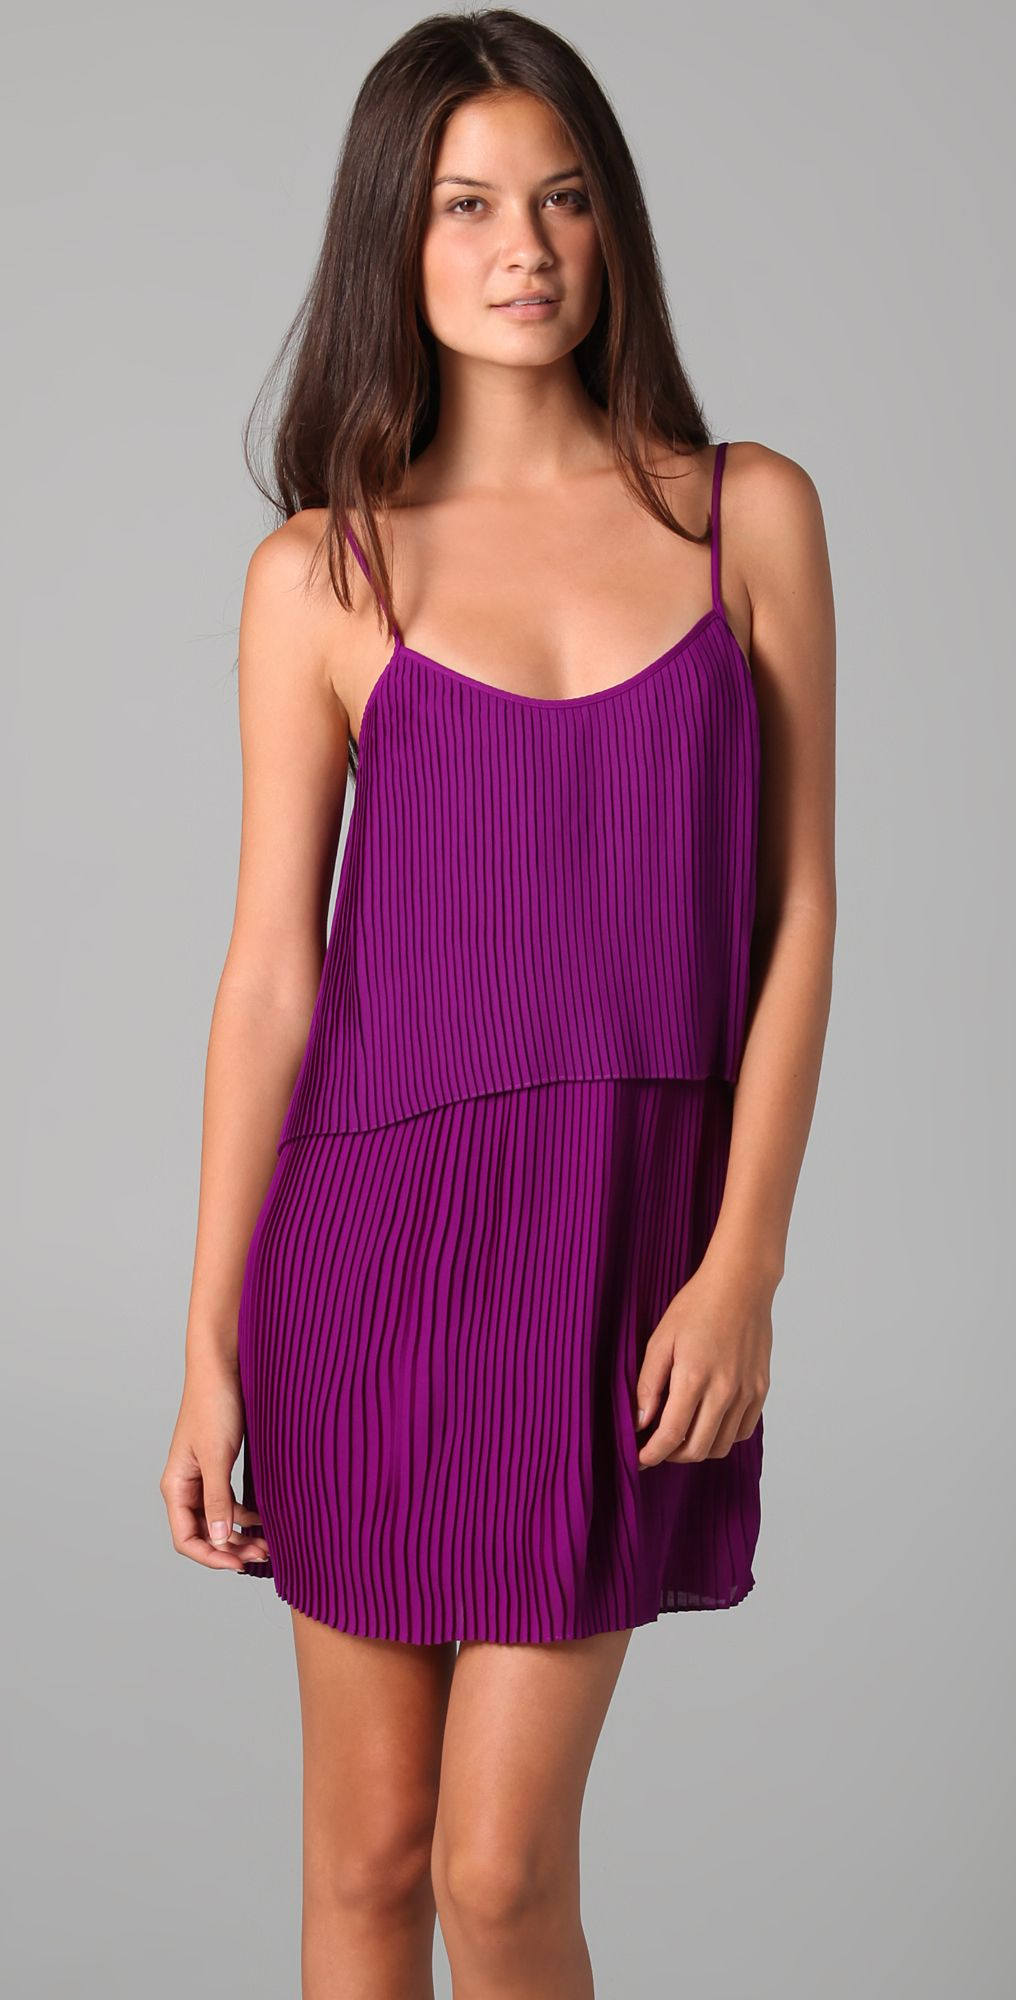 $258 Parker Pleated layer dress size s on lyst.com